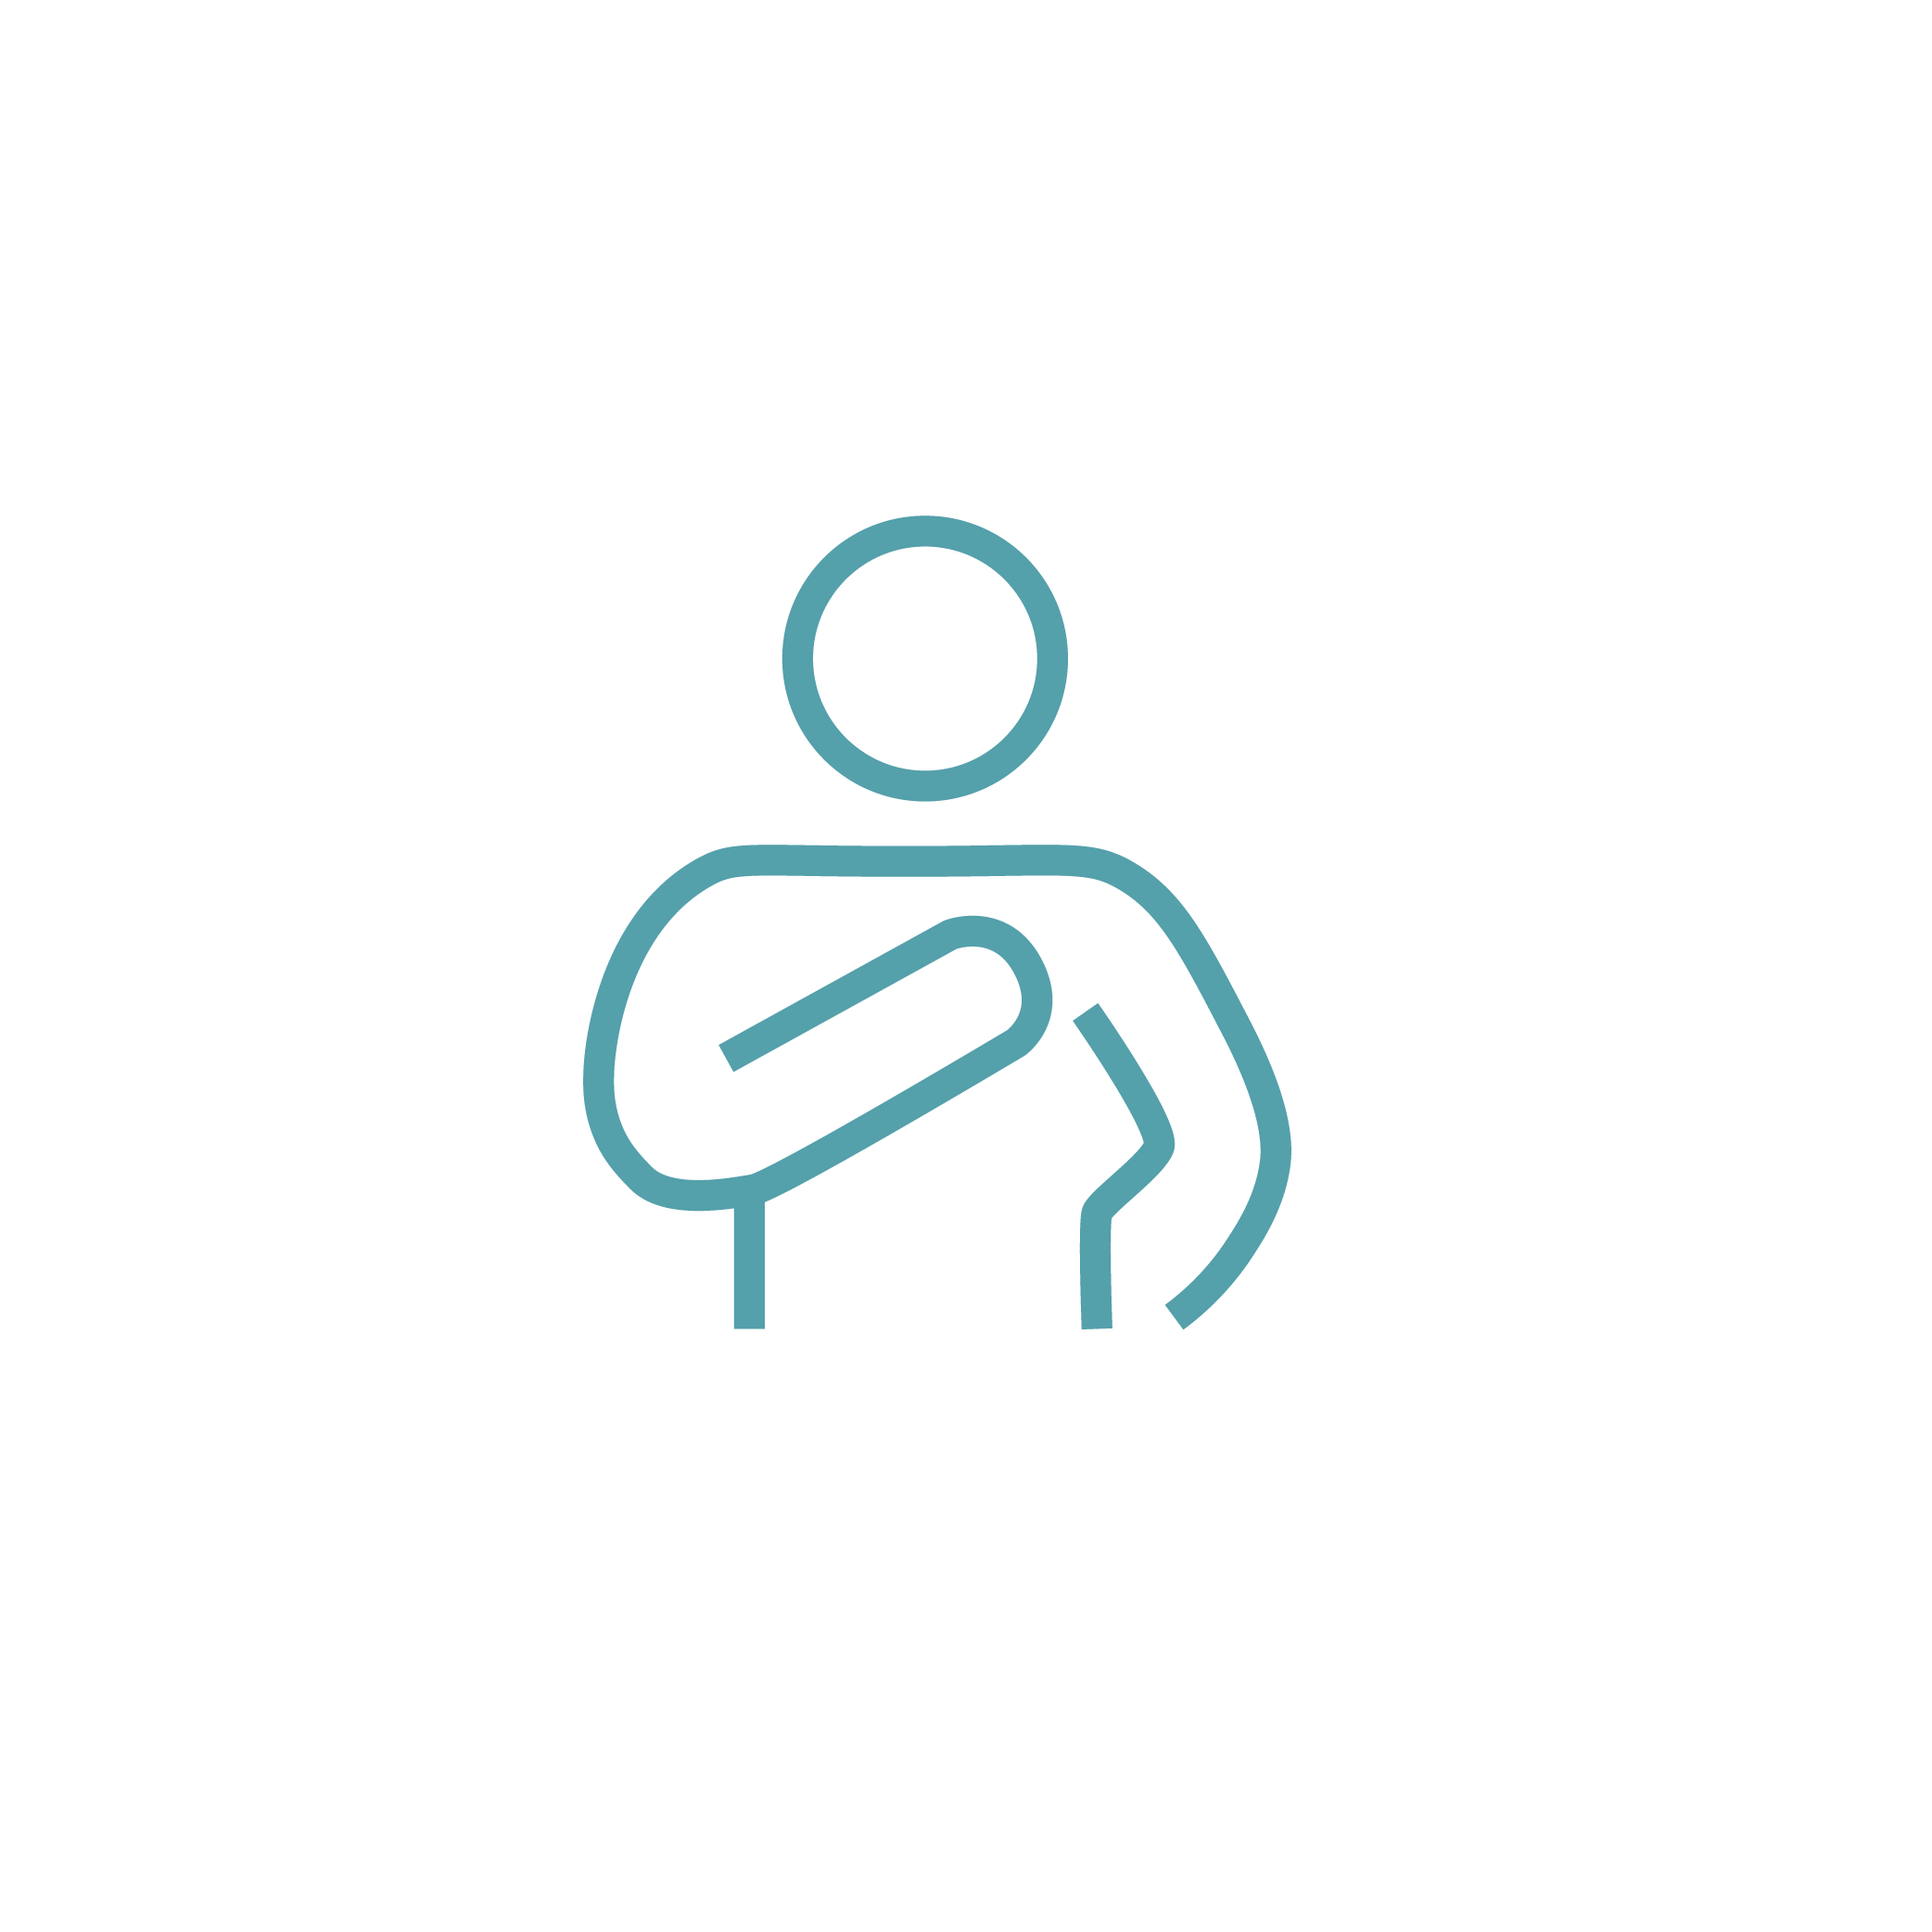 Icon of person using elbow to reduce physical contact.